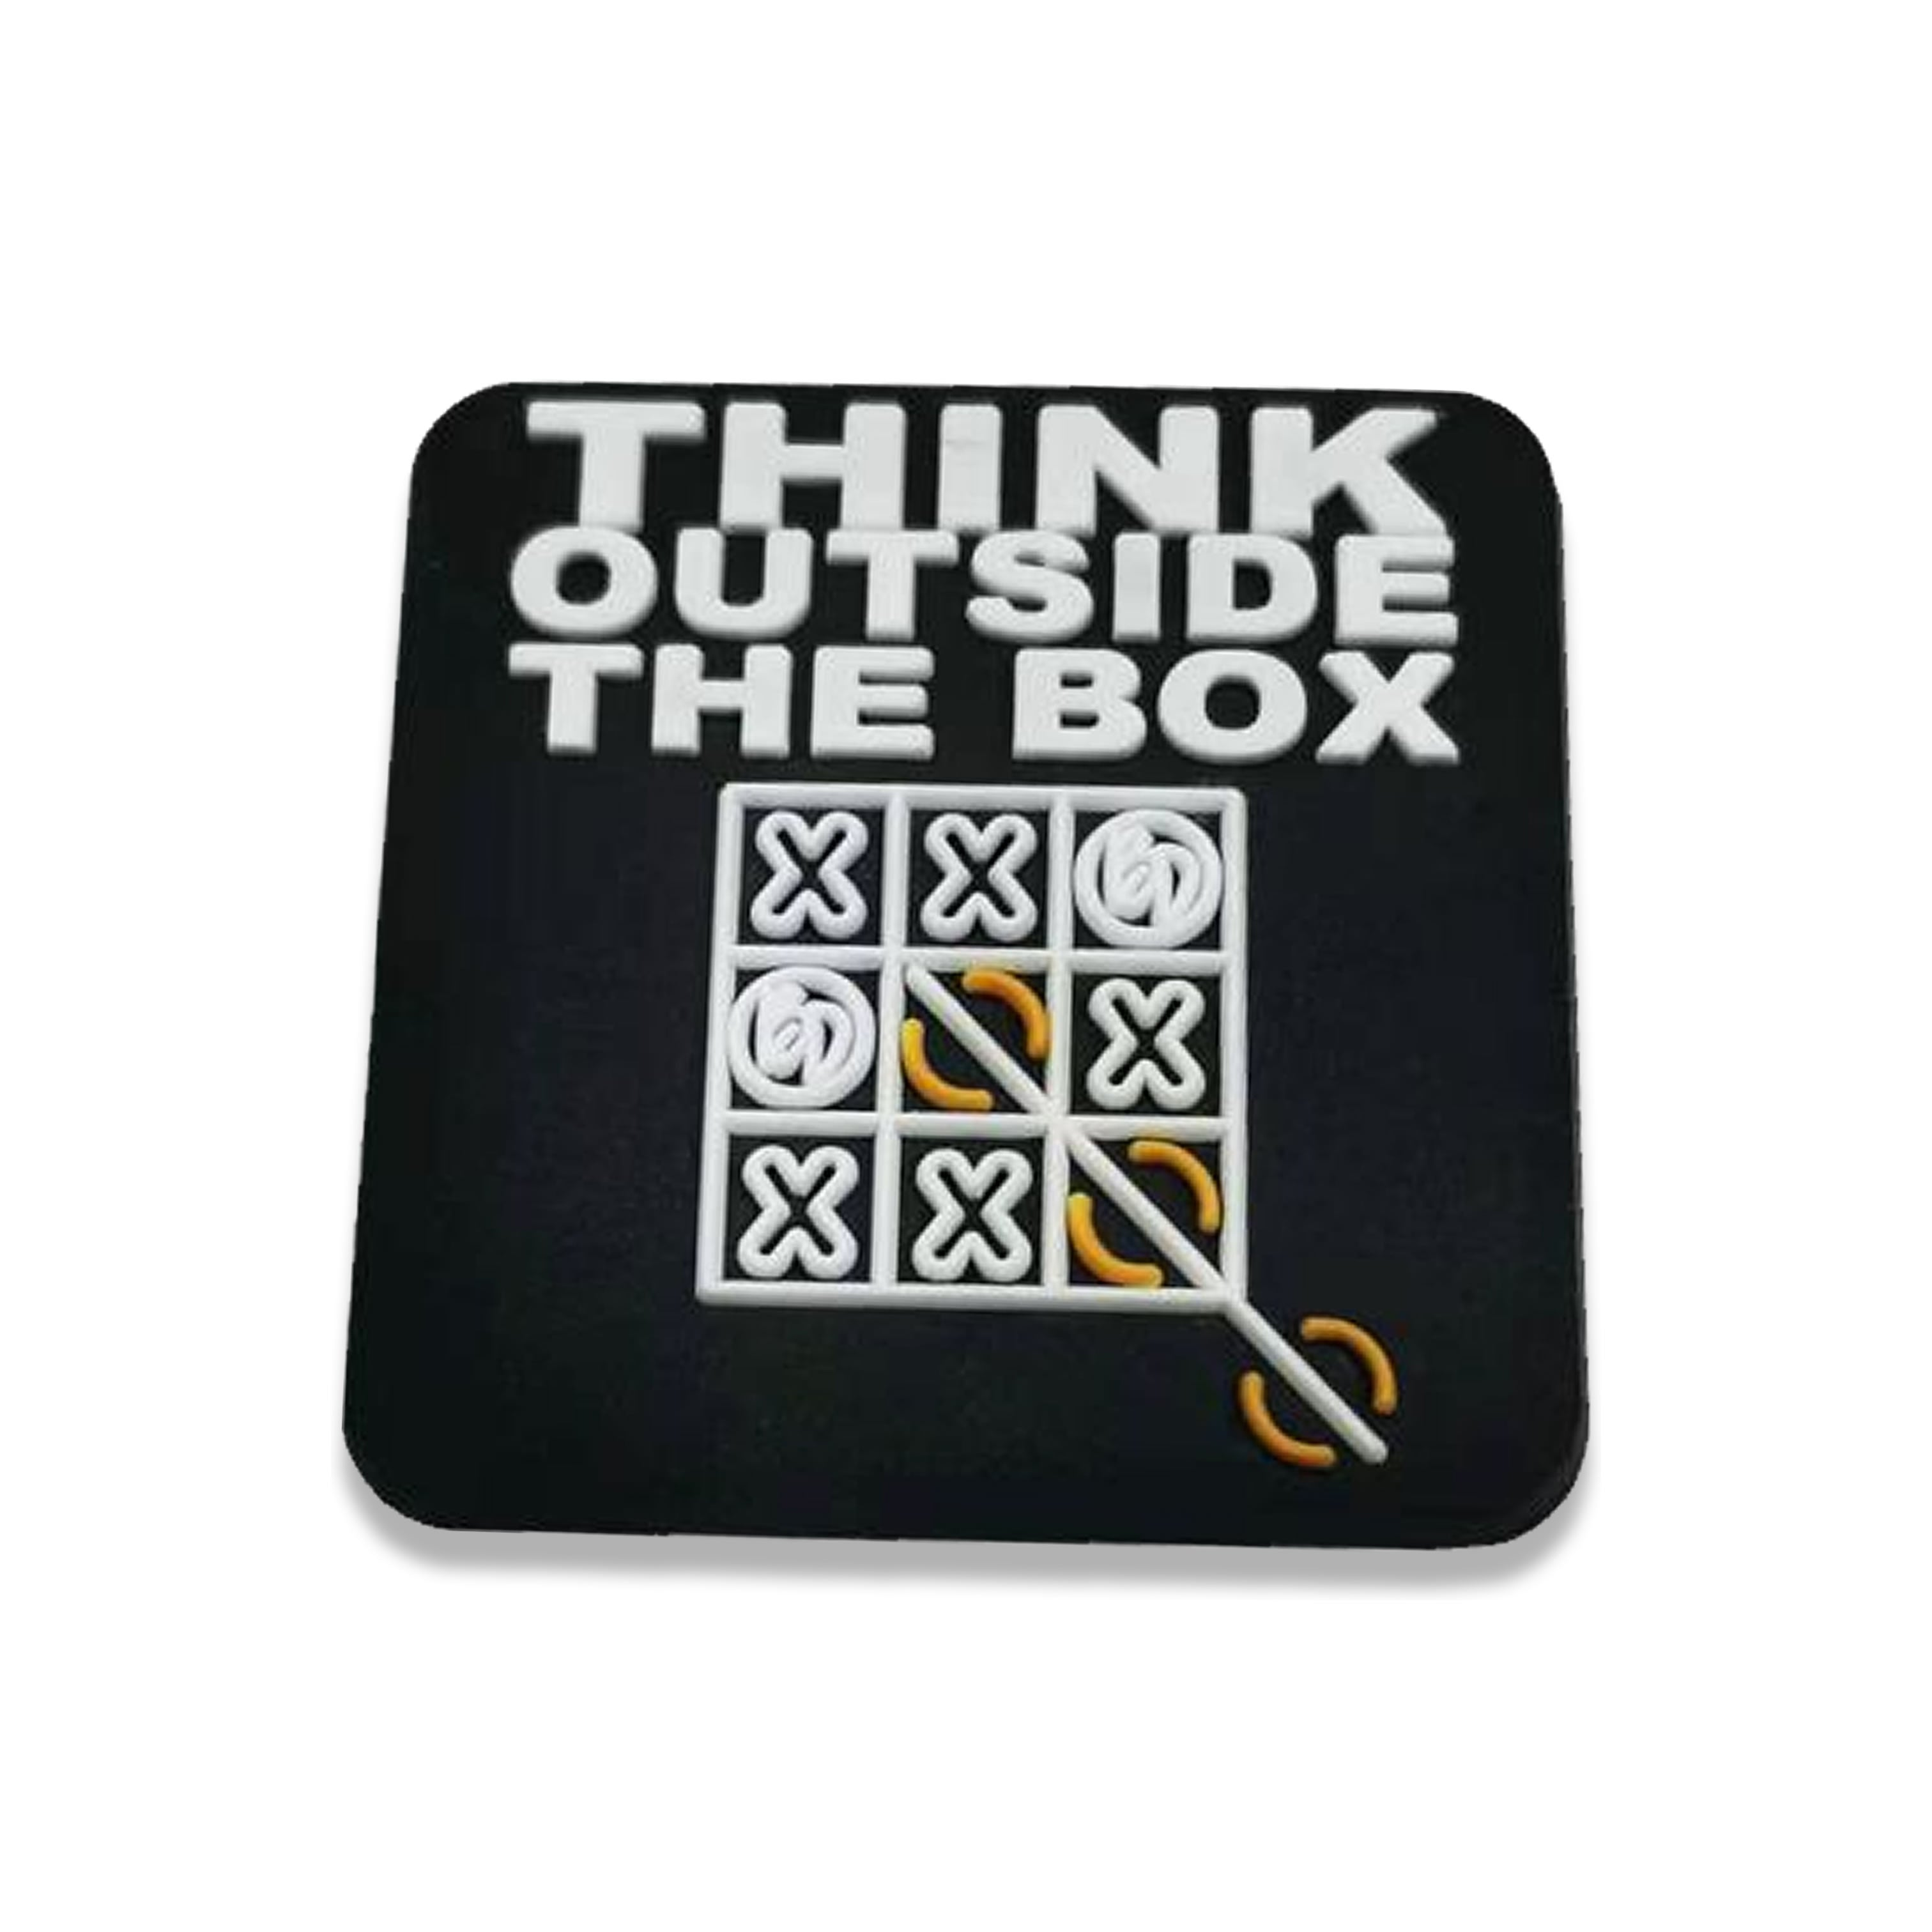 Think Outside The Box Croc Charms